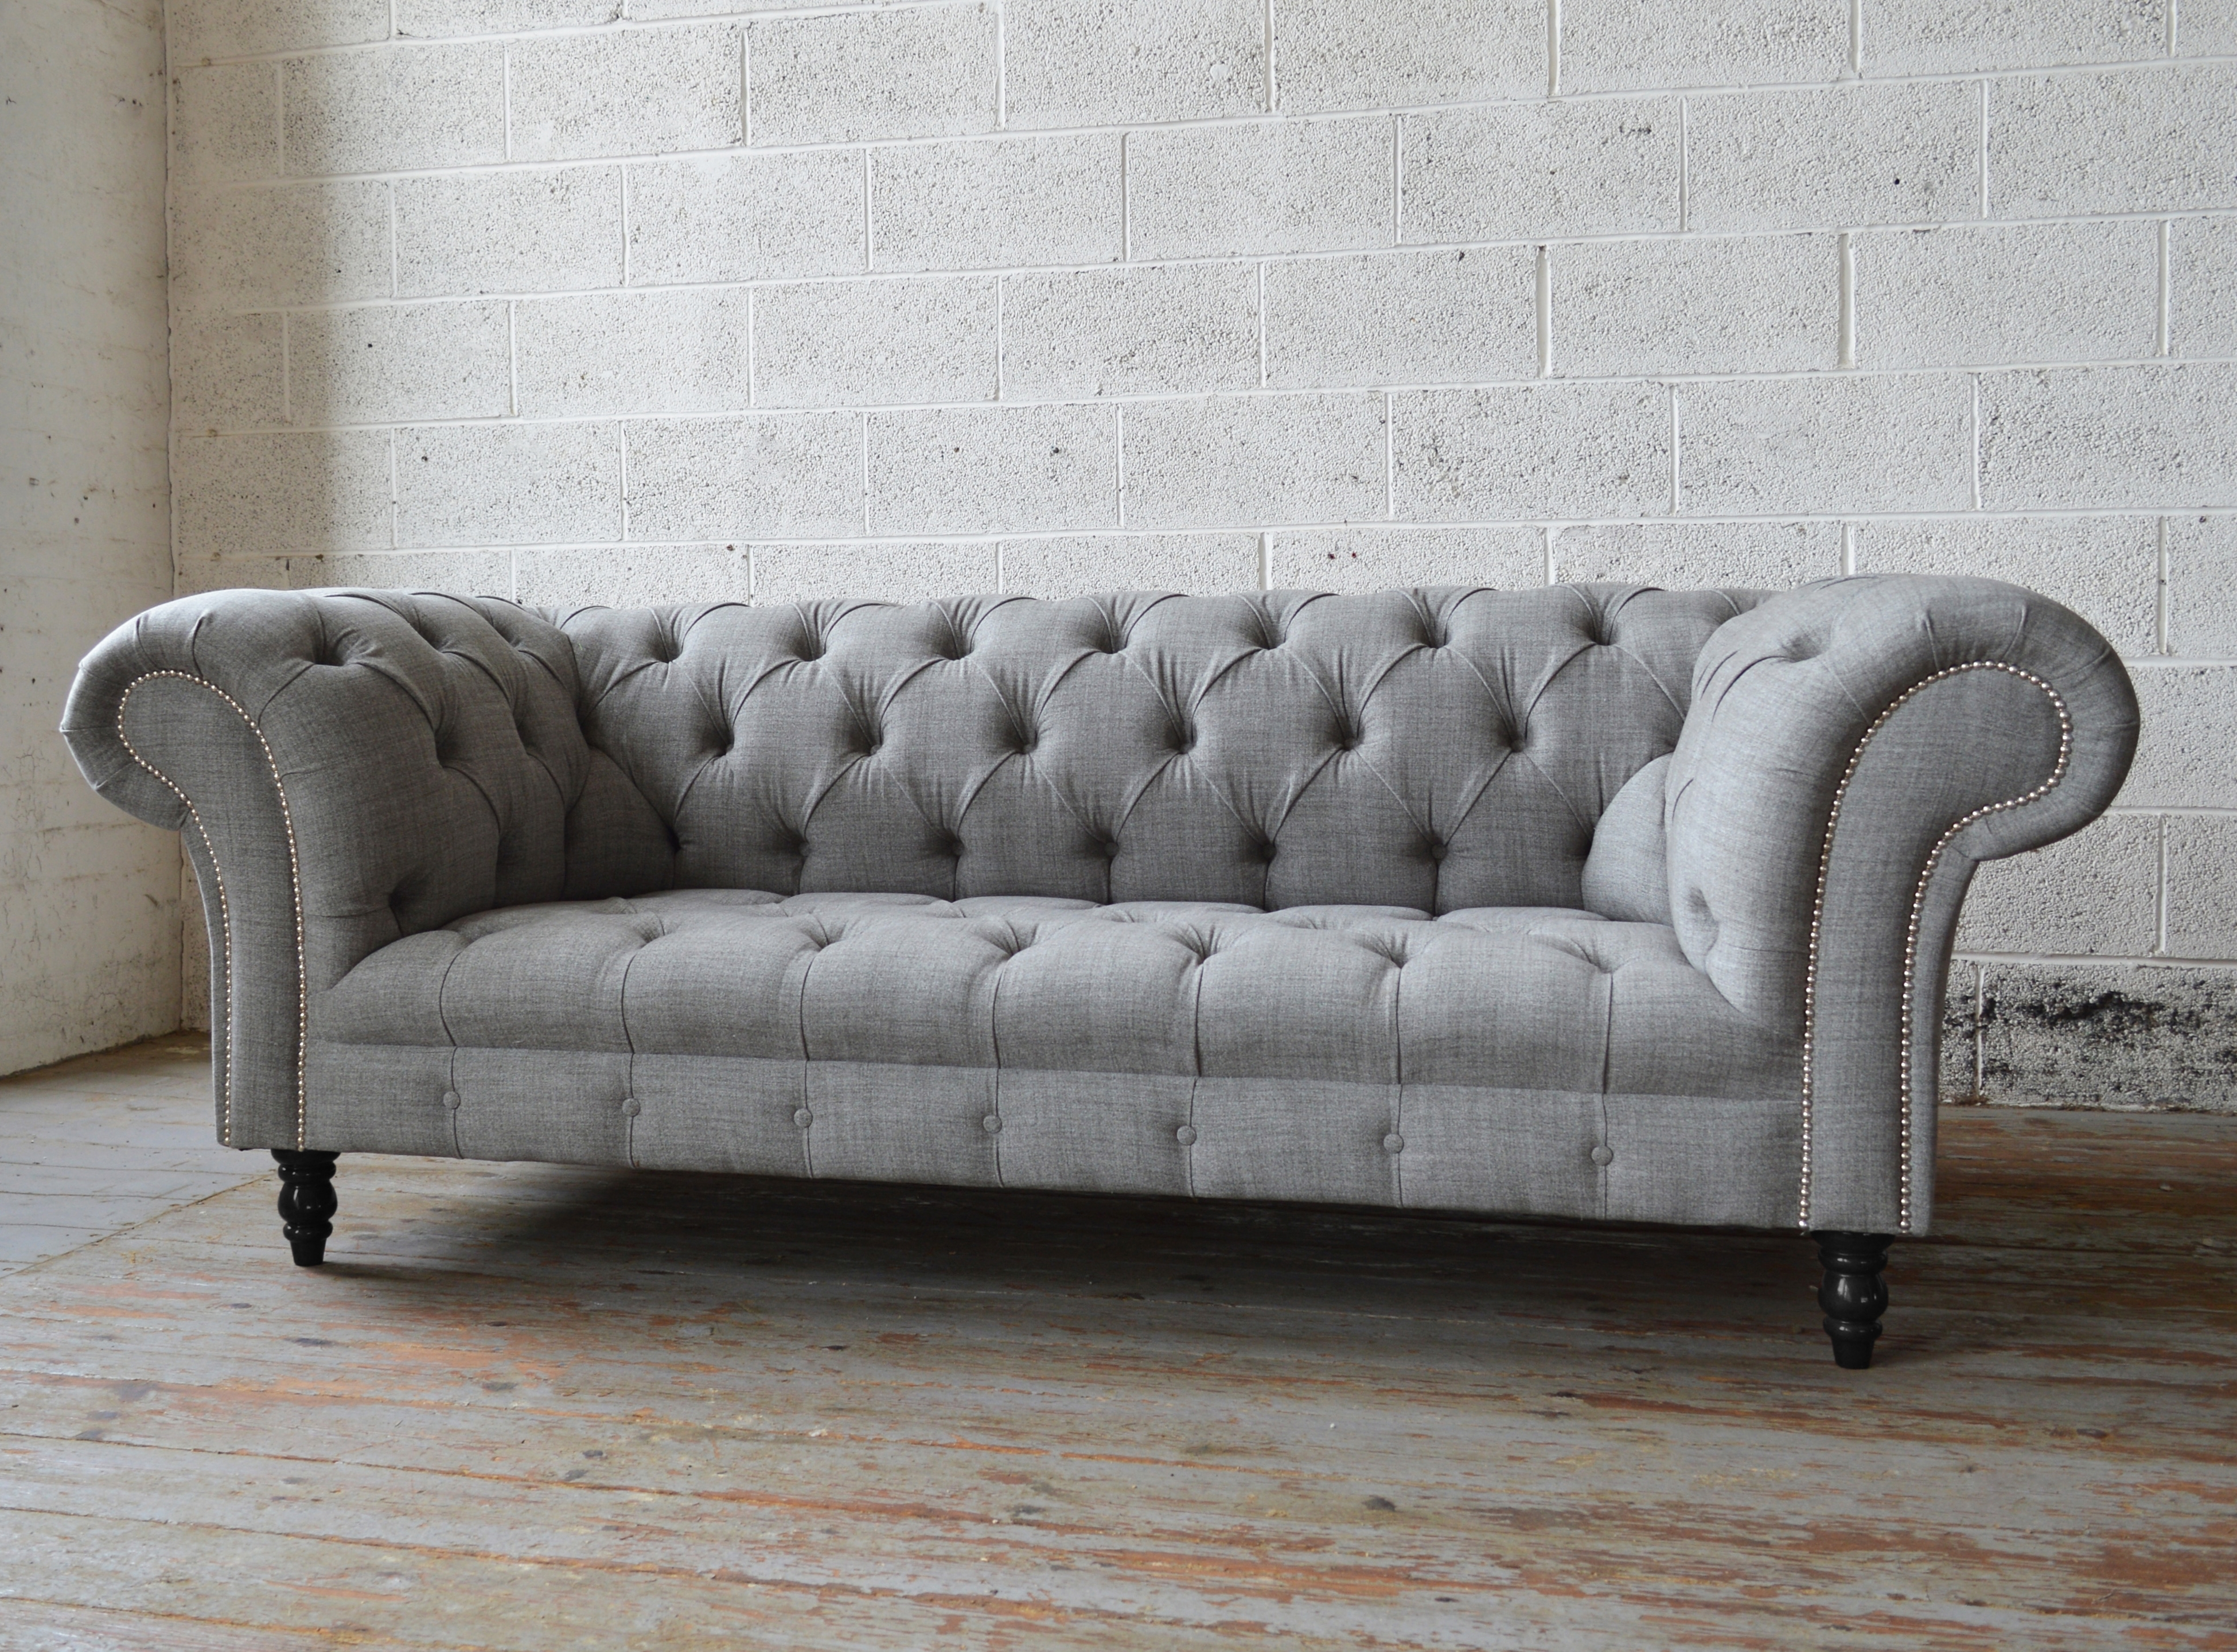 Tufted Leather Chesterfield Sofas Regarding Most Popular Sofas Amazing Grey Leather Chesterfield Sofa Blue Inside Light (View 15 of 20)